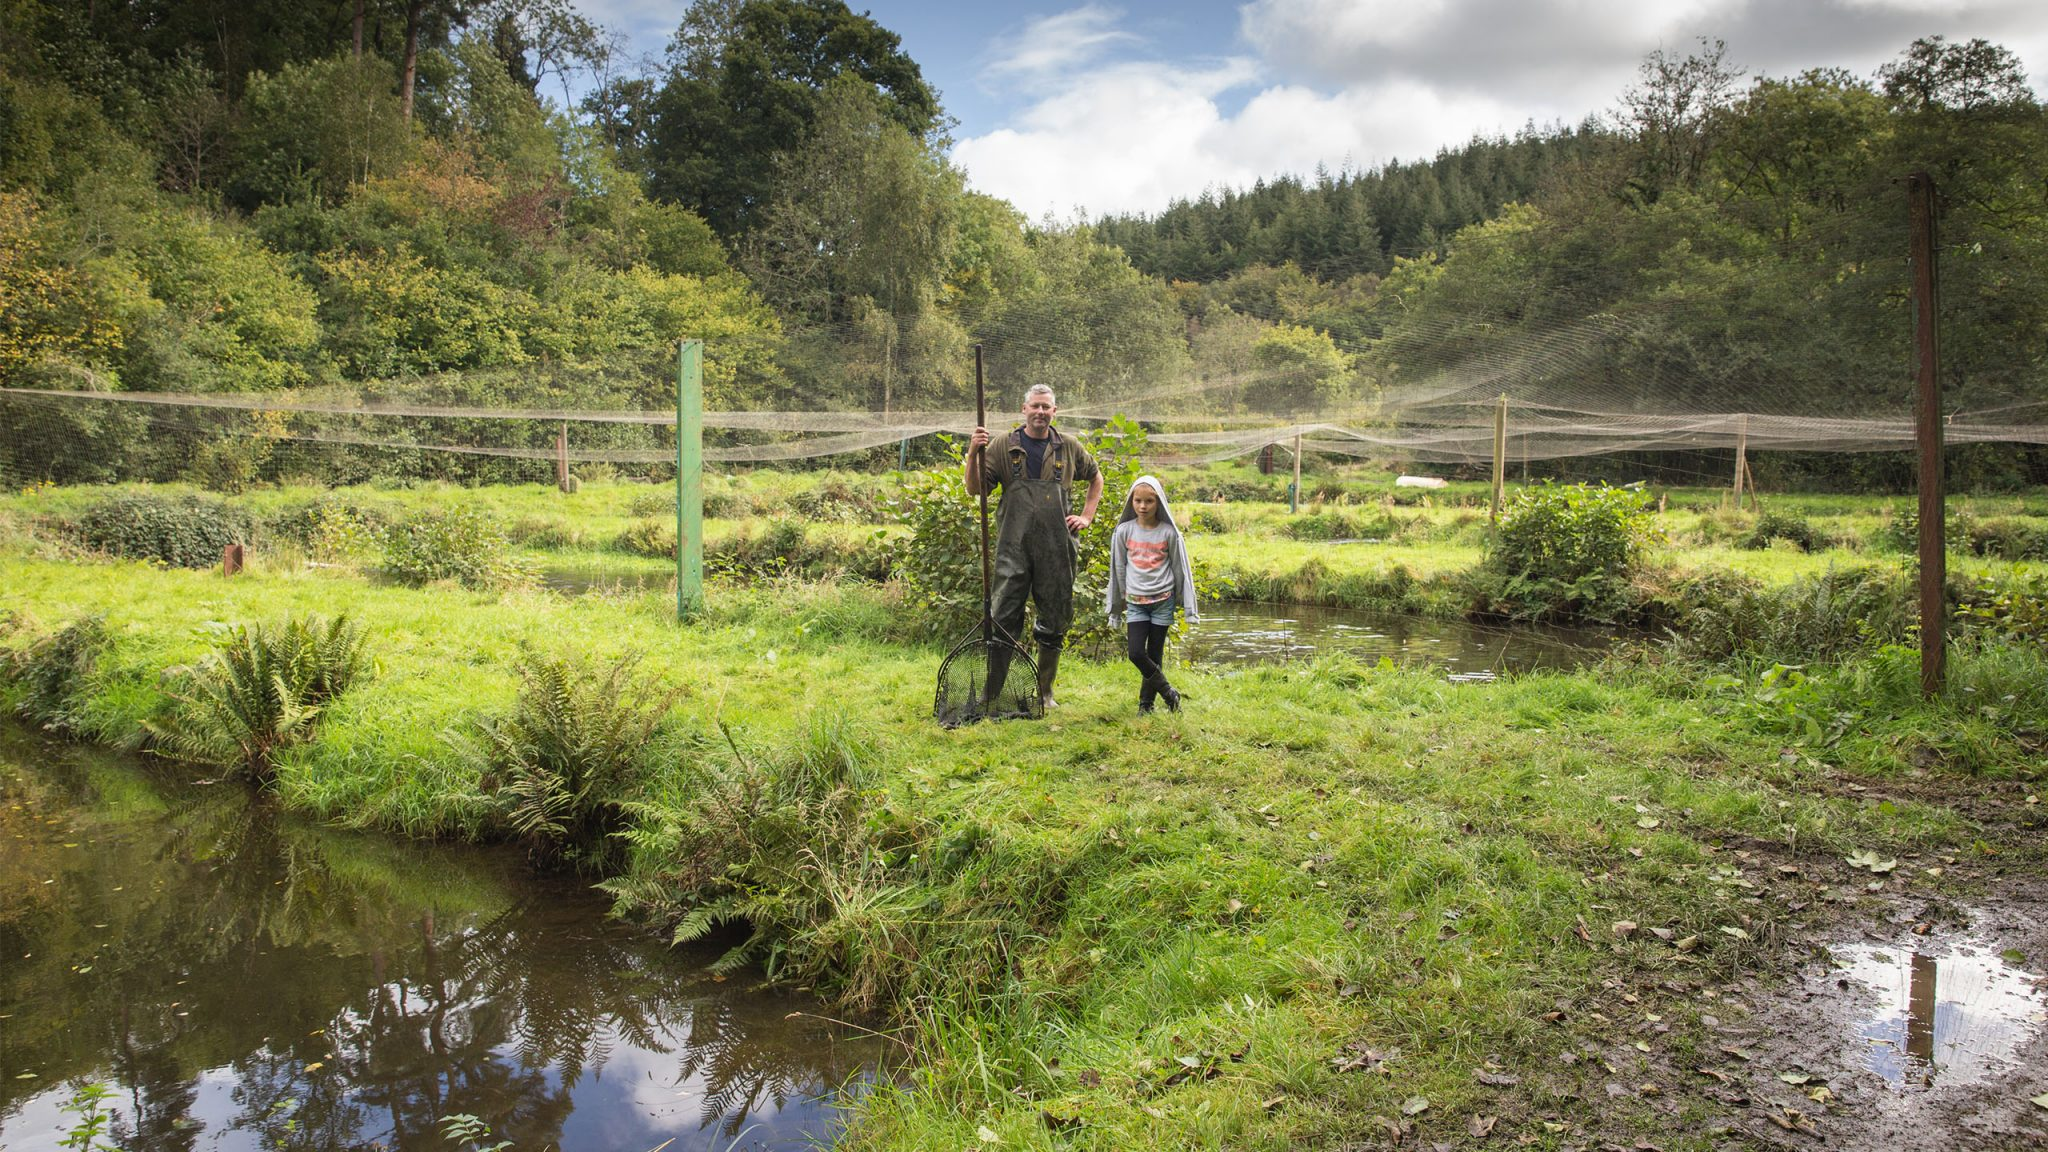 Portraits Commissioned for Rainbow Valley Trout Farm, and established hatchery and smoke-house set in idyllic Exmoor countryside.